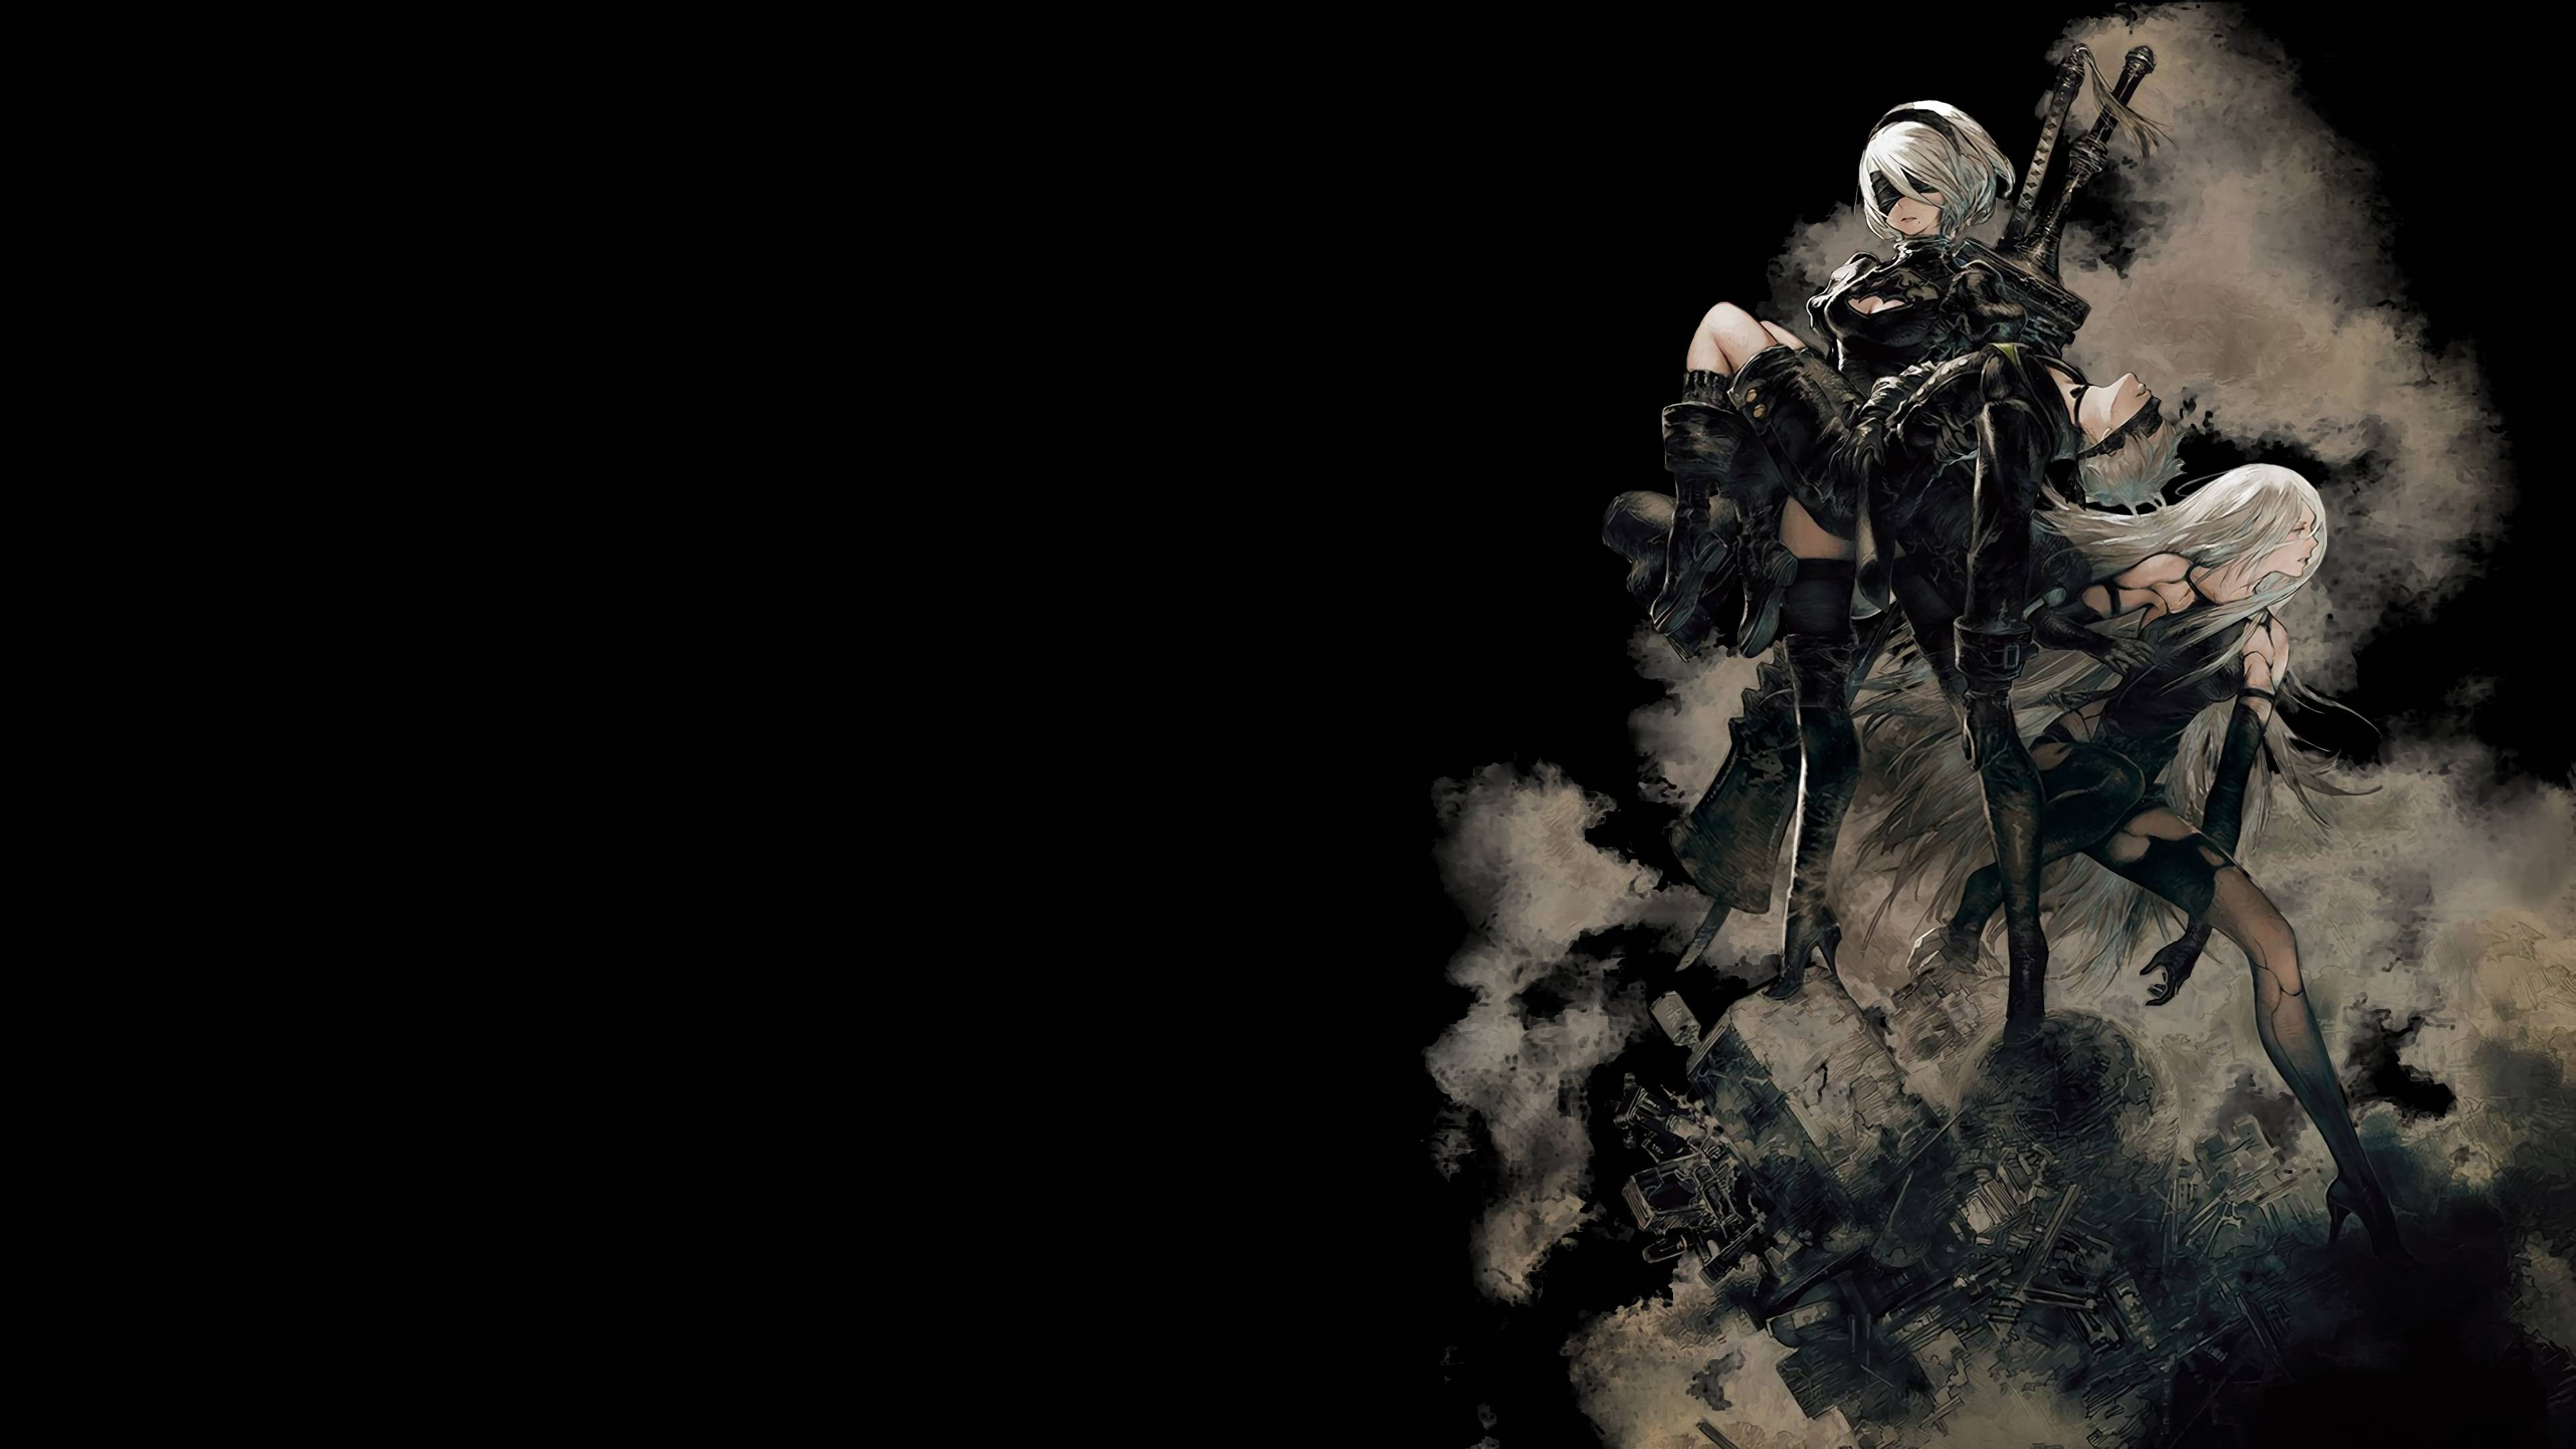 Nier Automata Wallpapers Or Desktop Backgrounds: Nier Automata Wallpaper ·① Download Free Cool High